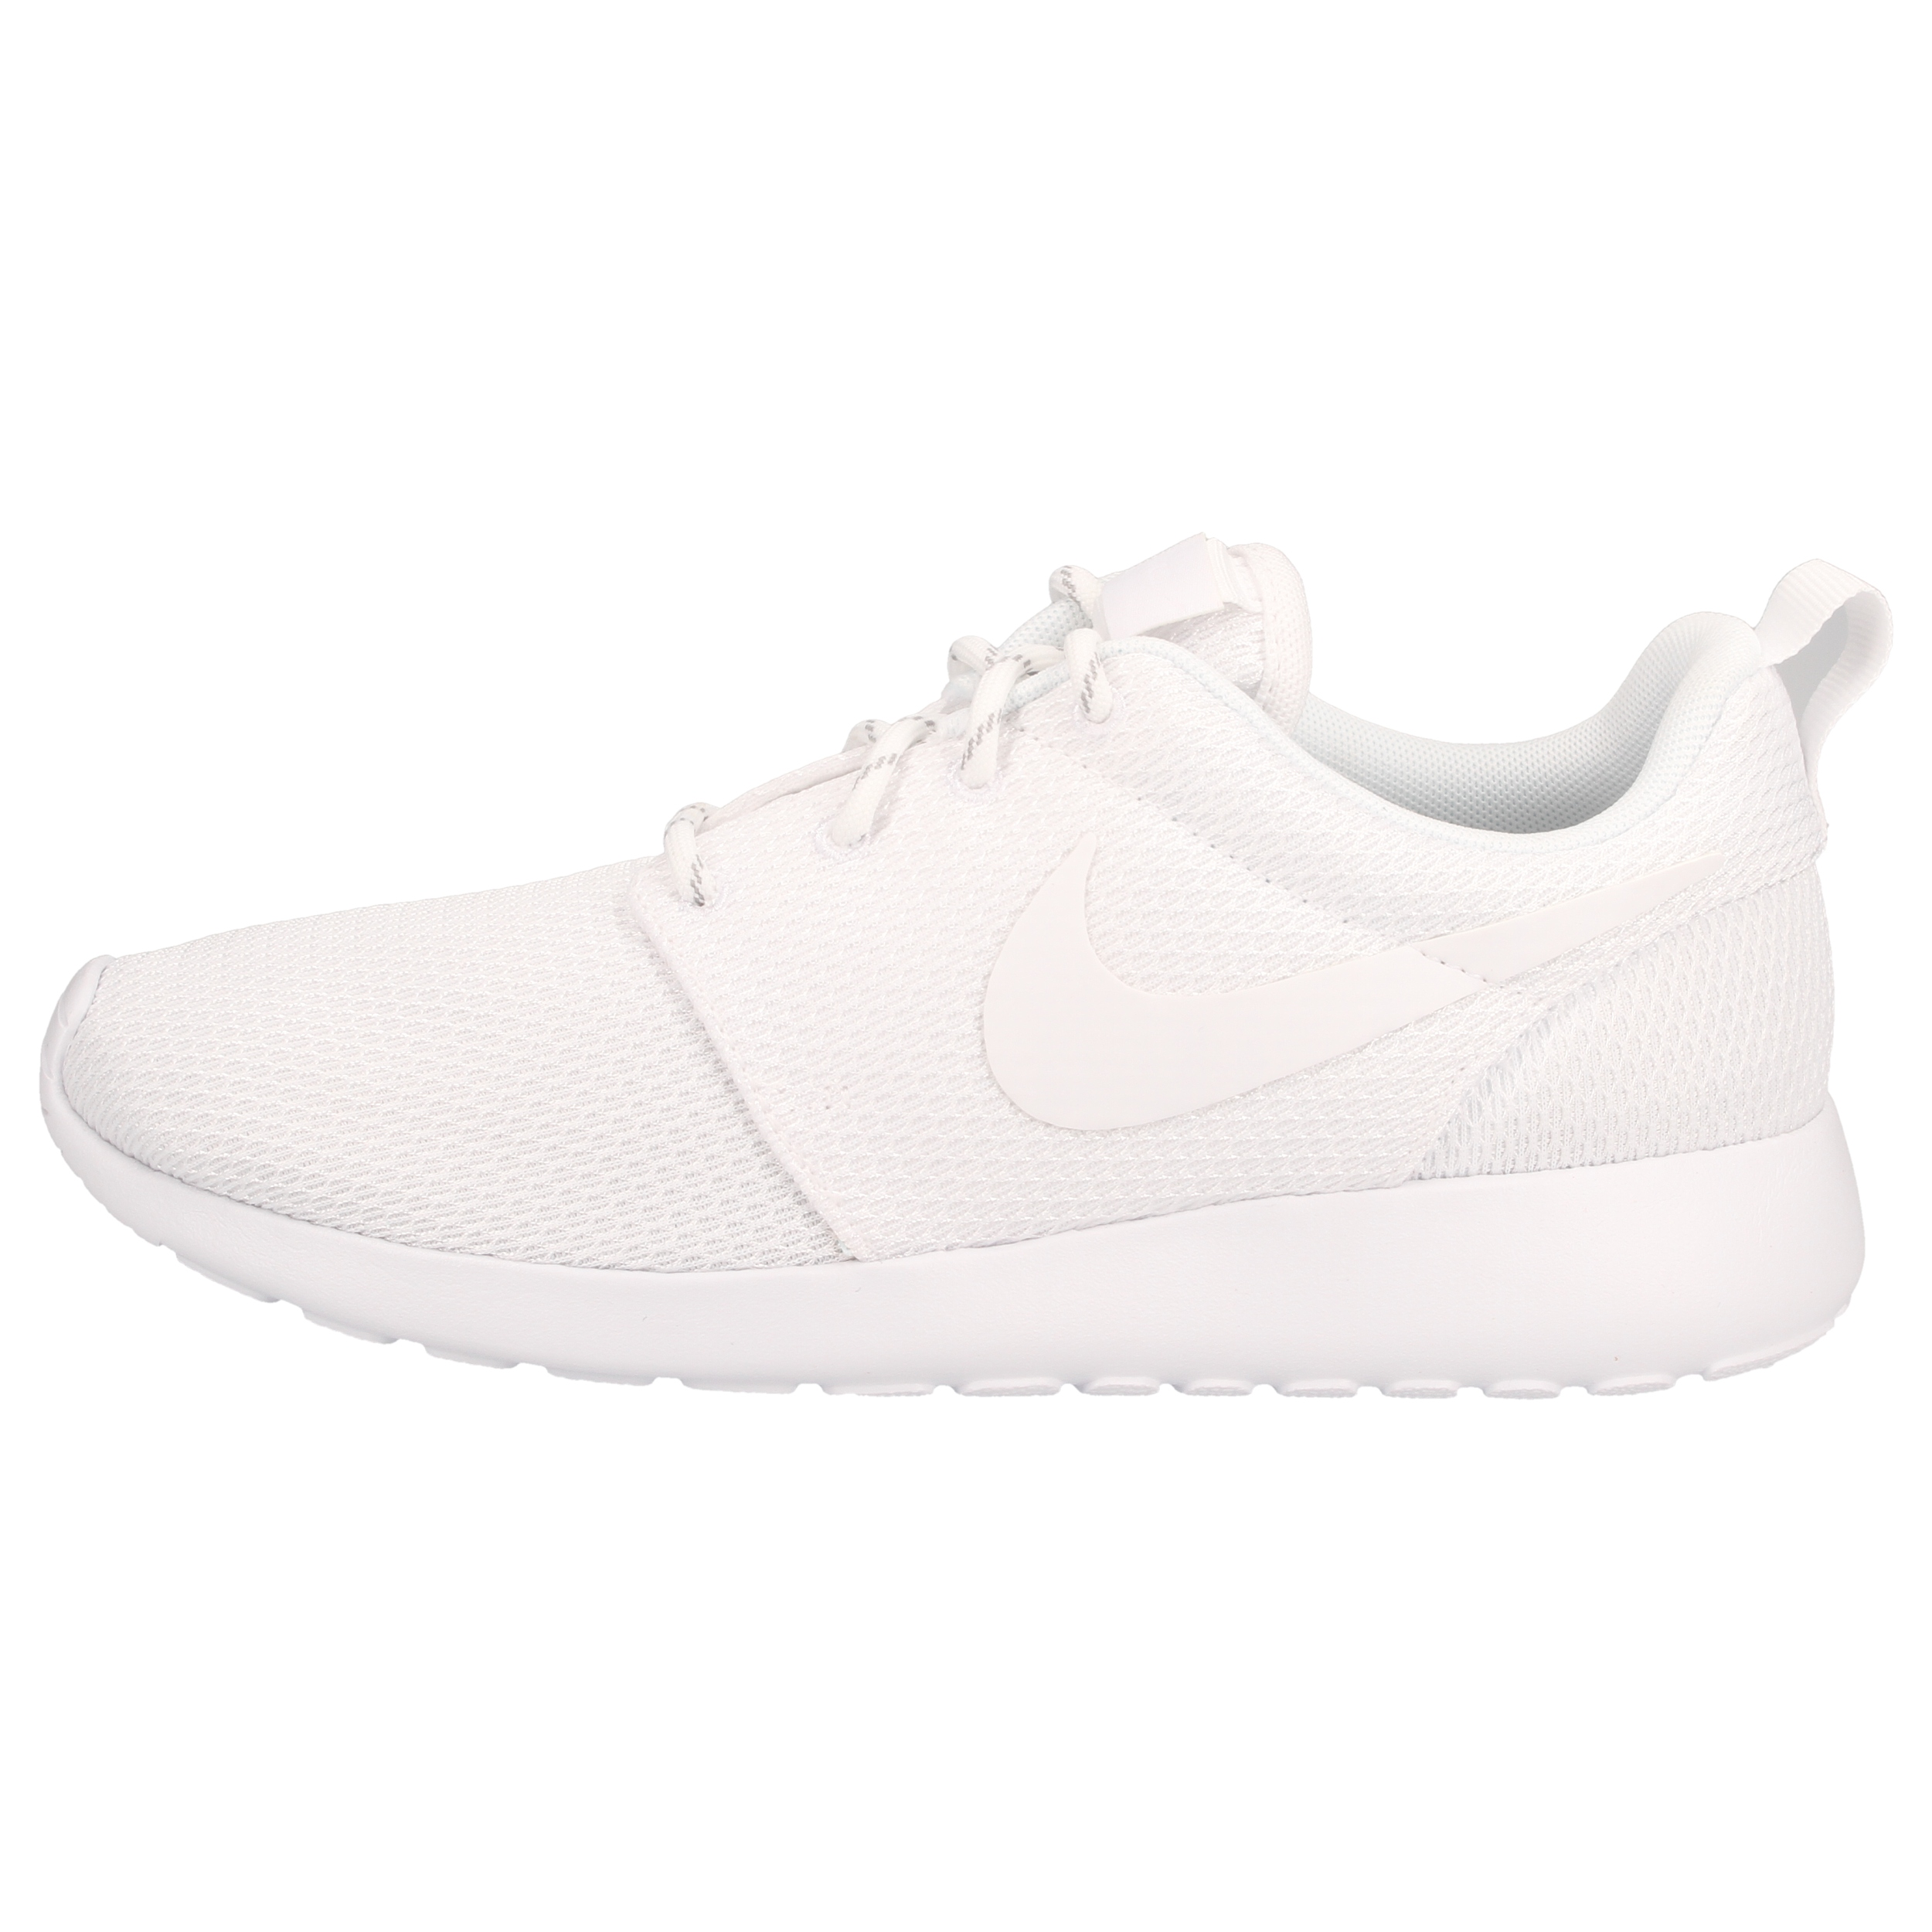 lowest price 0d2a2 4fce3 Buty damskie Nike WMNS Roshe Run One 511882111 38